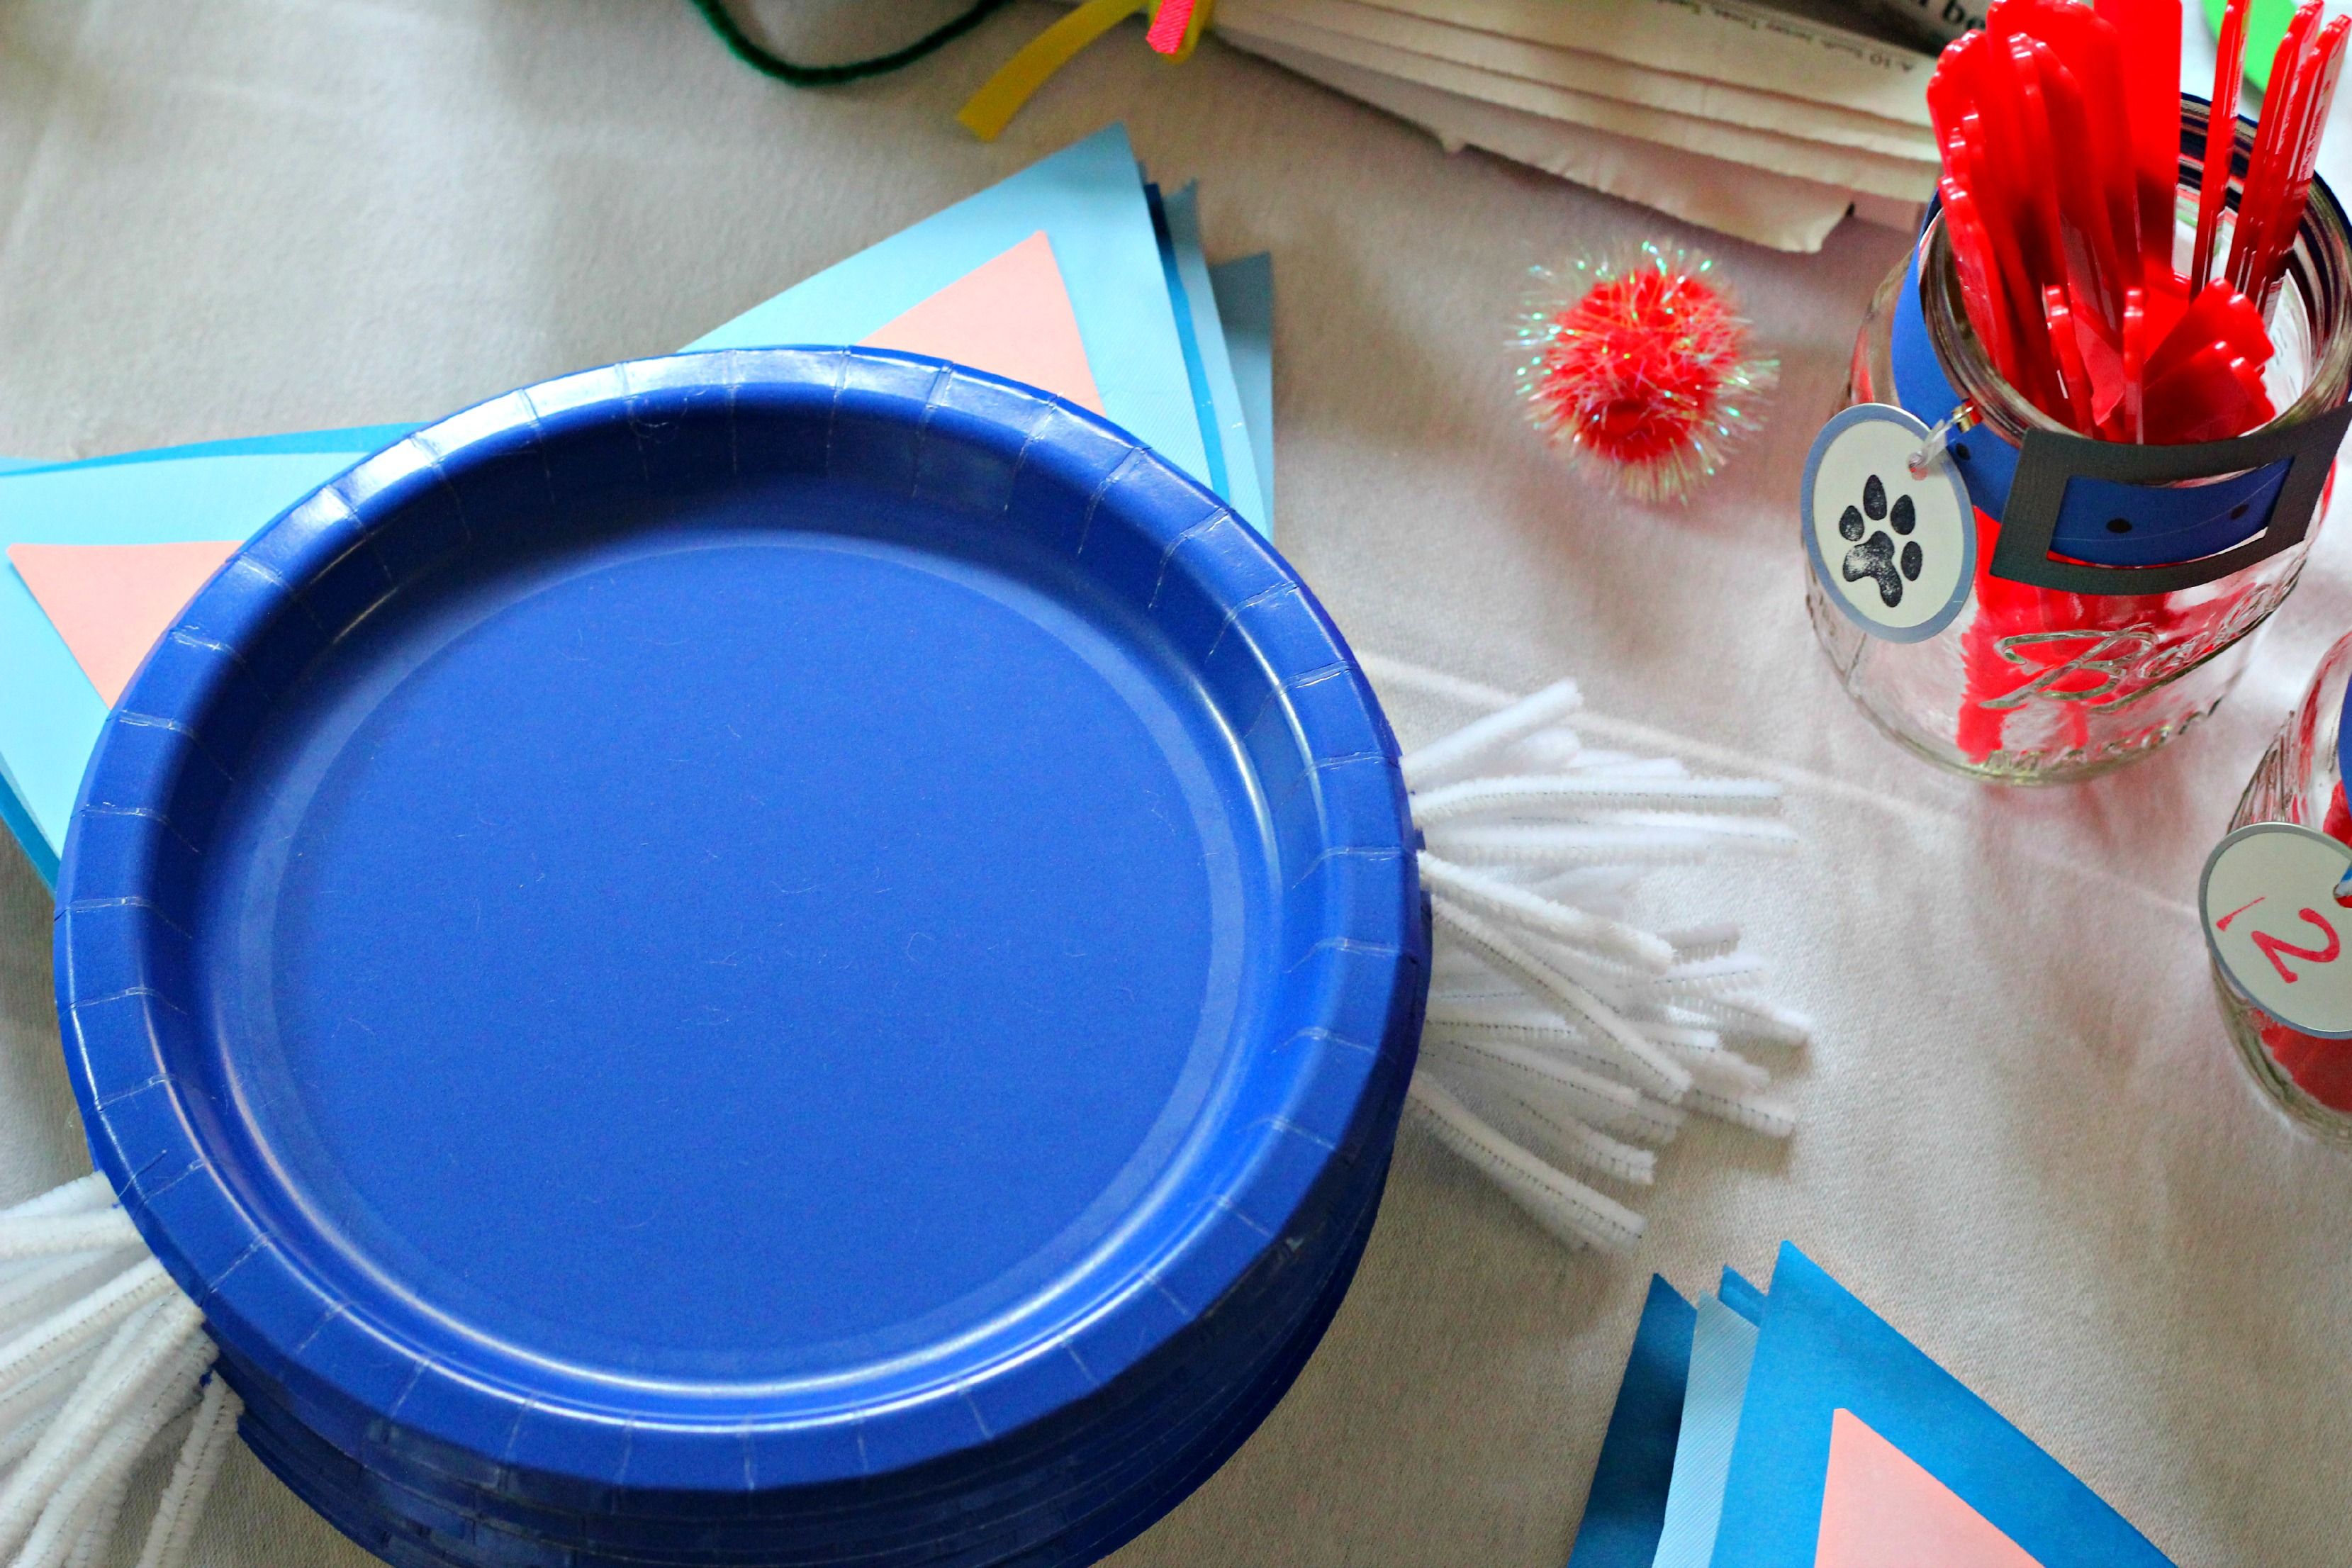 The blue paper plates were decorated as cats with ears and whiskers. The dessert plates were decorated as puppies with black ears and a fuzzy nose. & Puppy and Kitten Second Birthday Party - Ice Cream Off Paper Plates